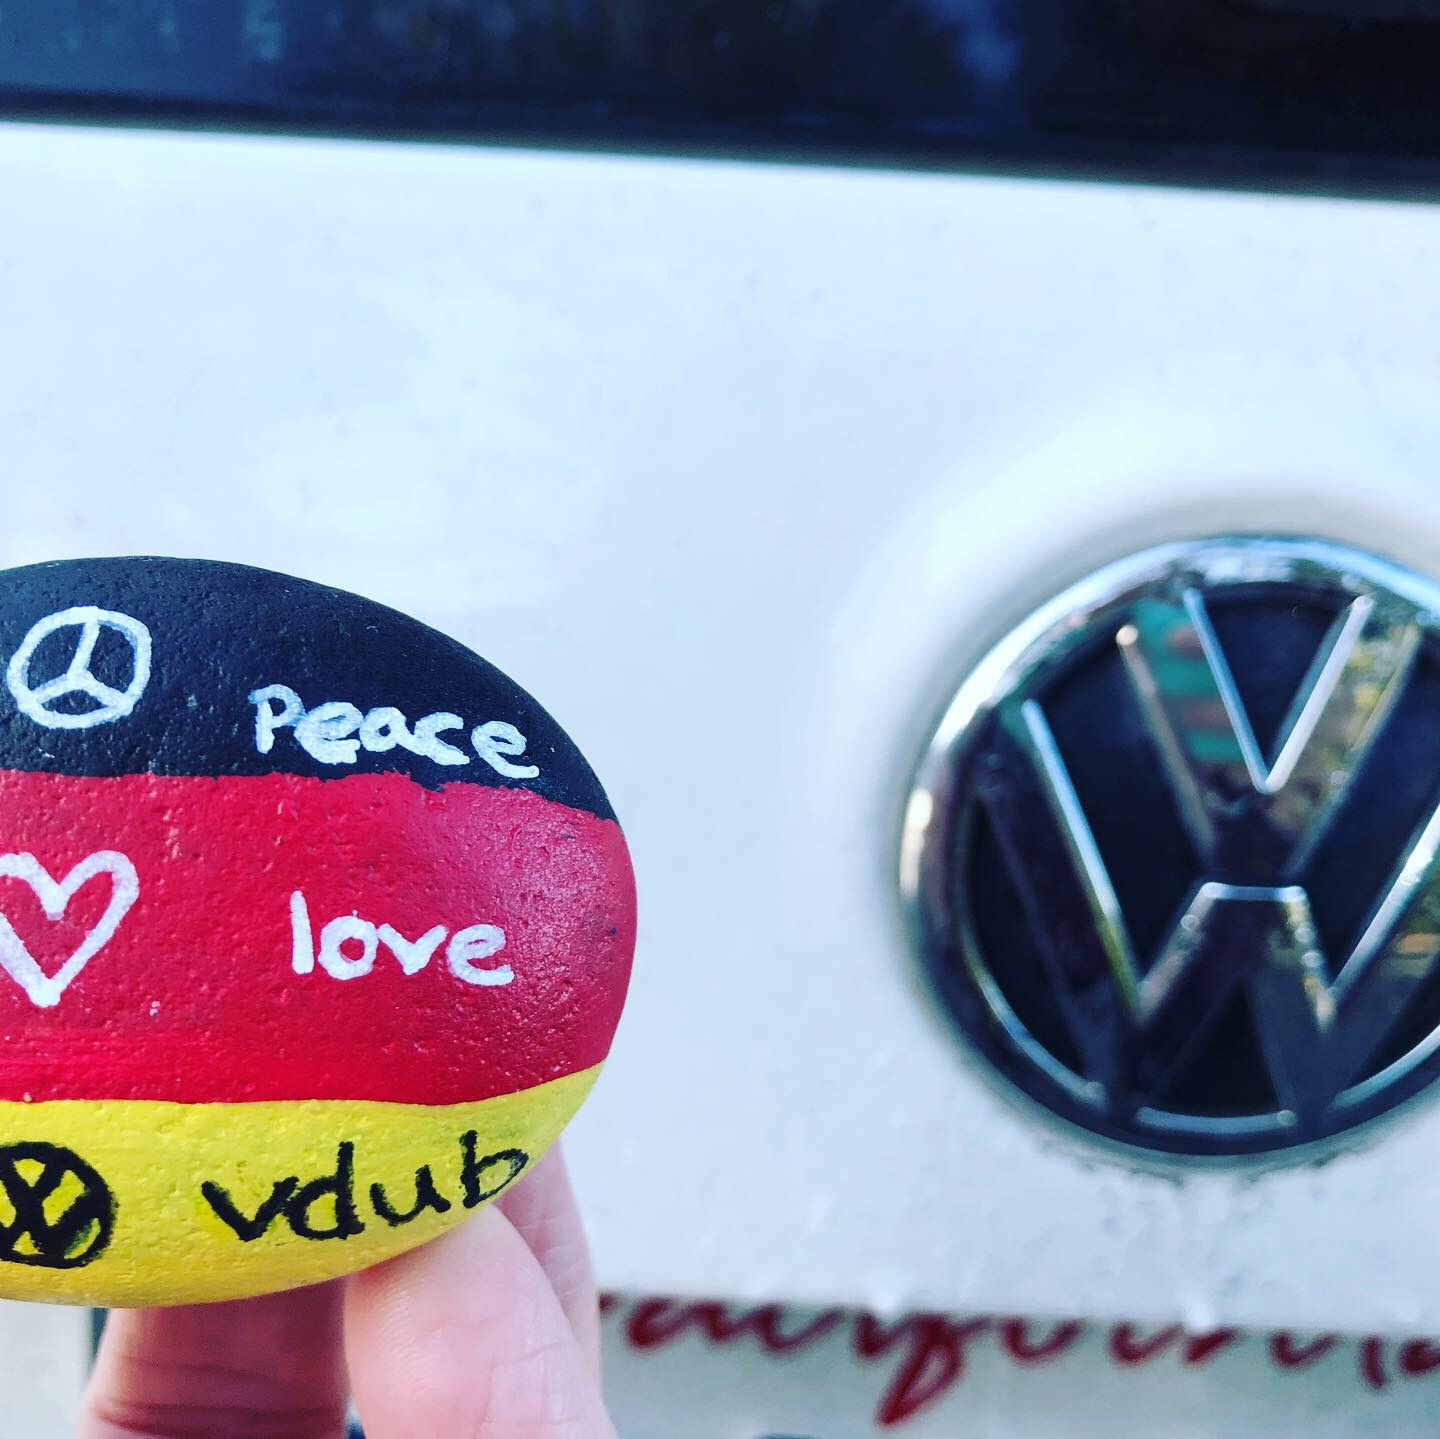 Peace Love Vdub Painted Rock With My Volkswagen Jetta Tdi Peace And Love Pet Rocks Painted Rocks